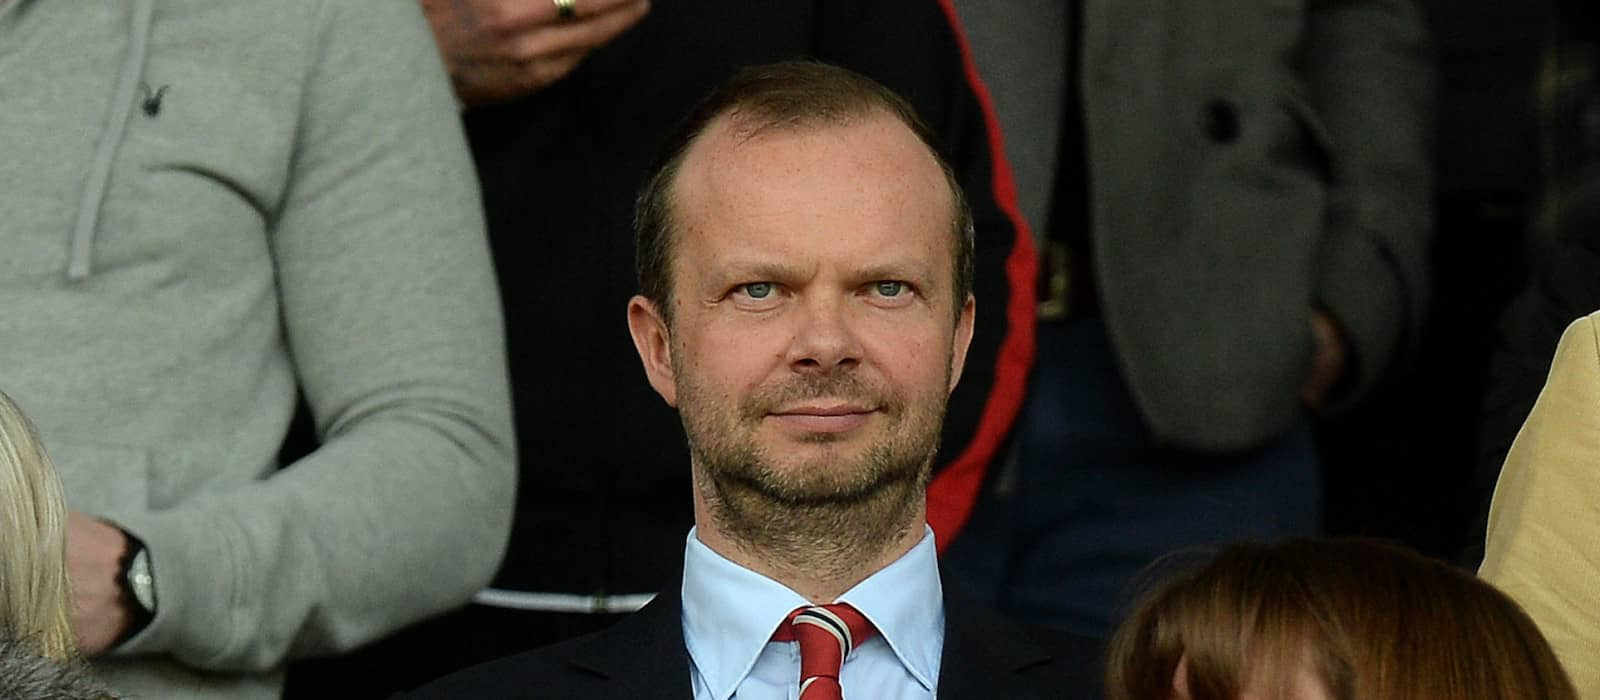 Manchester United fans arrange banner protesting against Ed Woodward and Glazer family – report